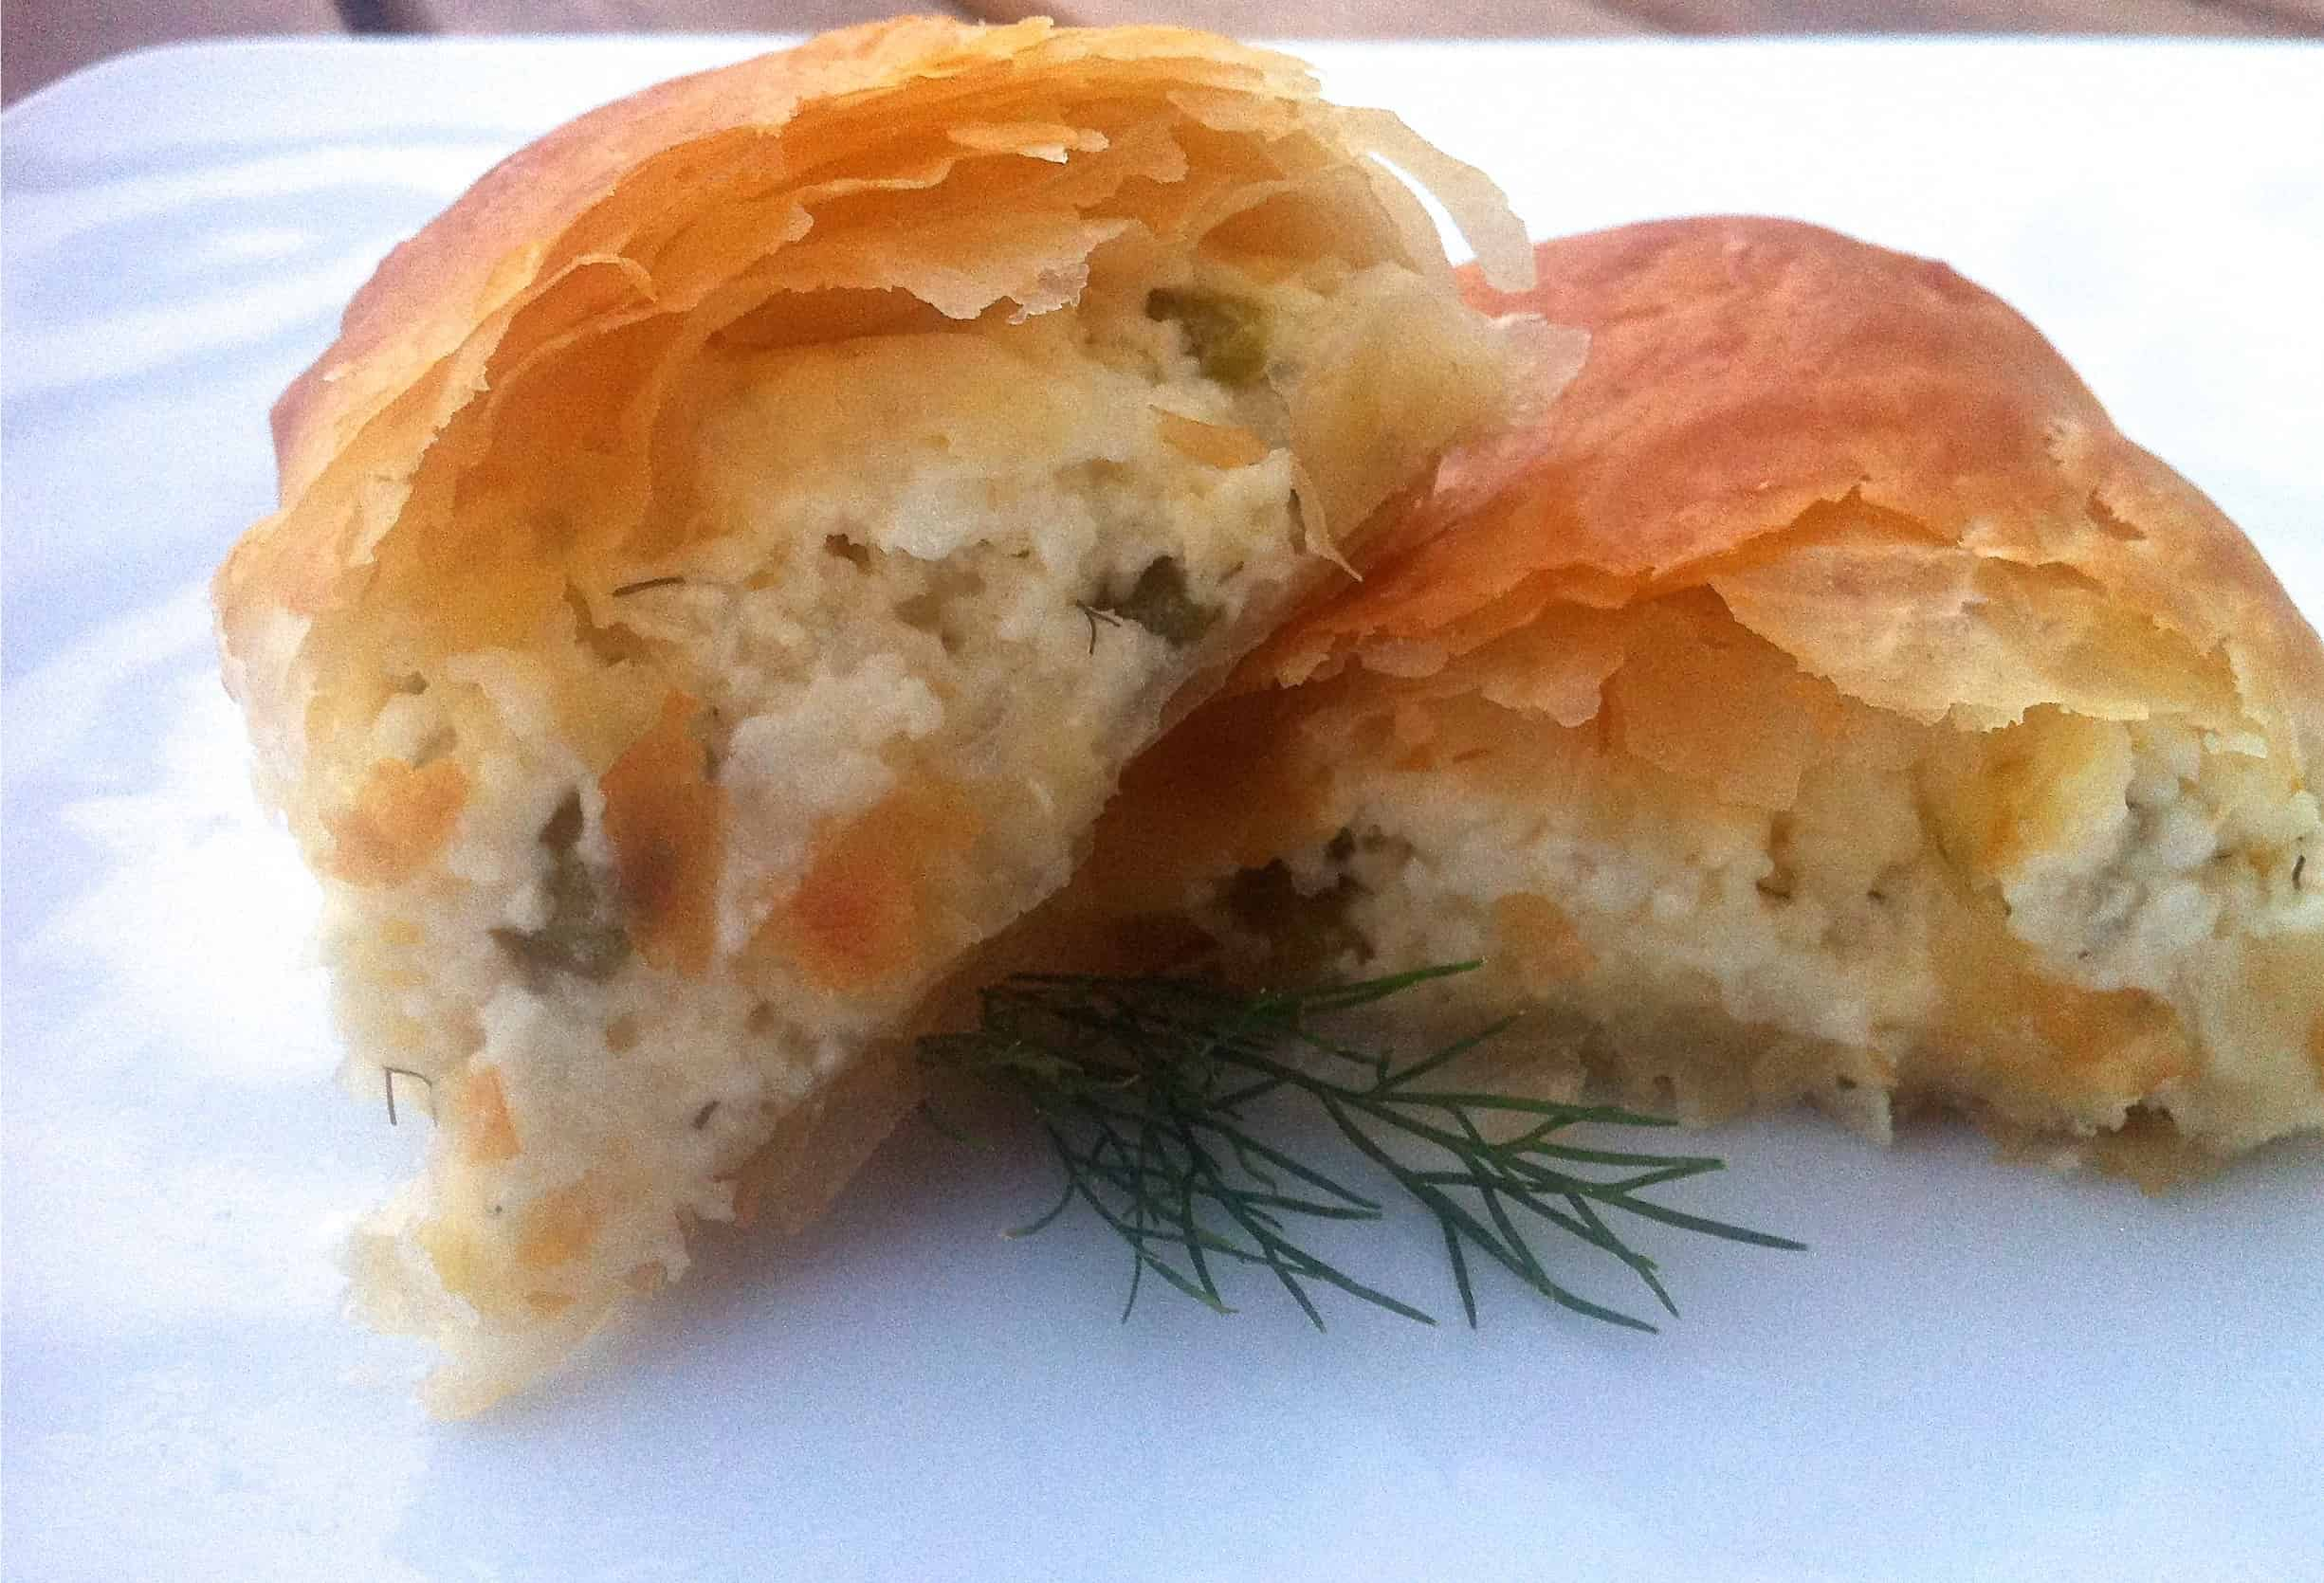 Phyllo dough rolls with feta cheese and peppers recipe for Phyllo dough recipes appetizers indian